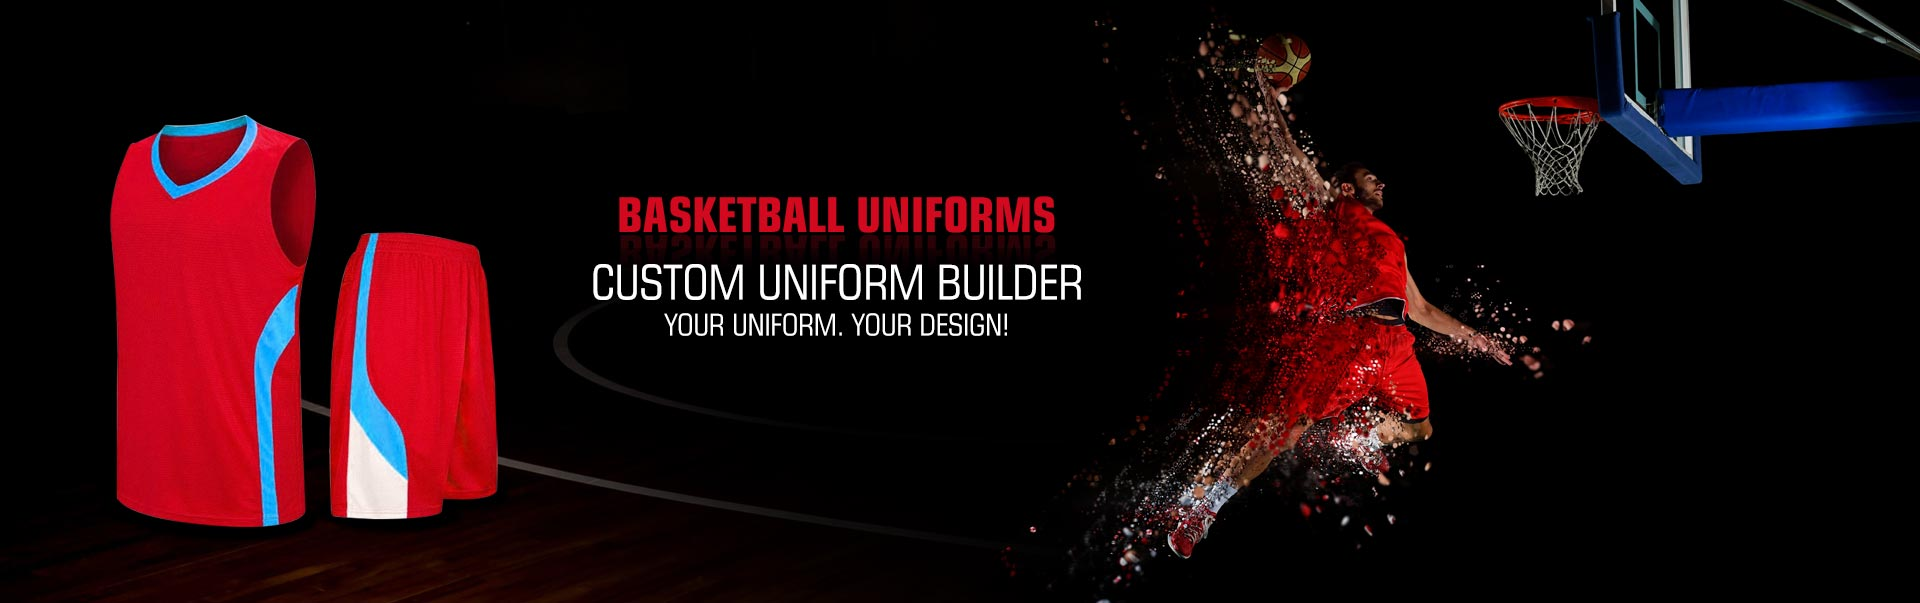 Basketball Uniforms Wholesaler, Suppliers in Eugene